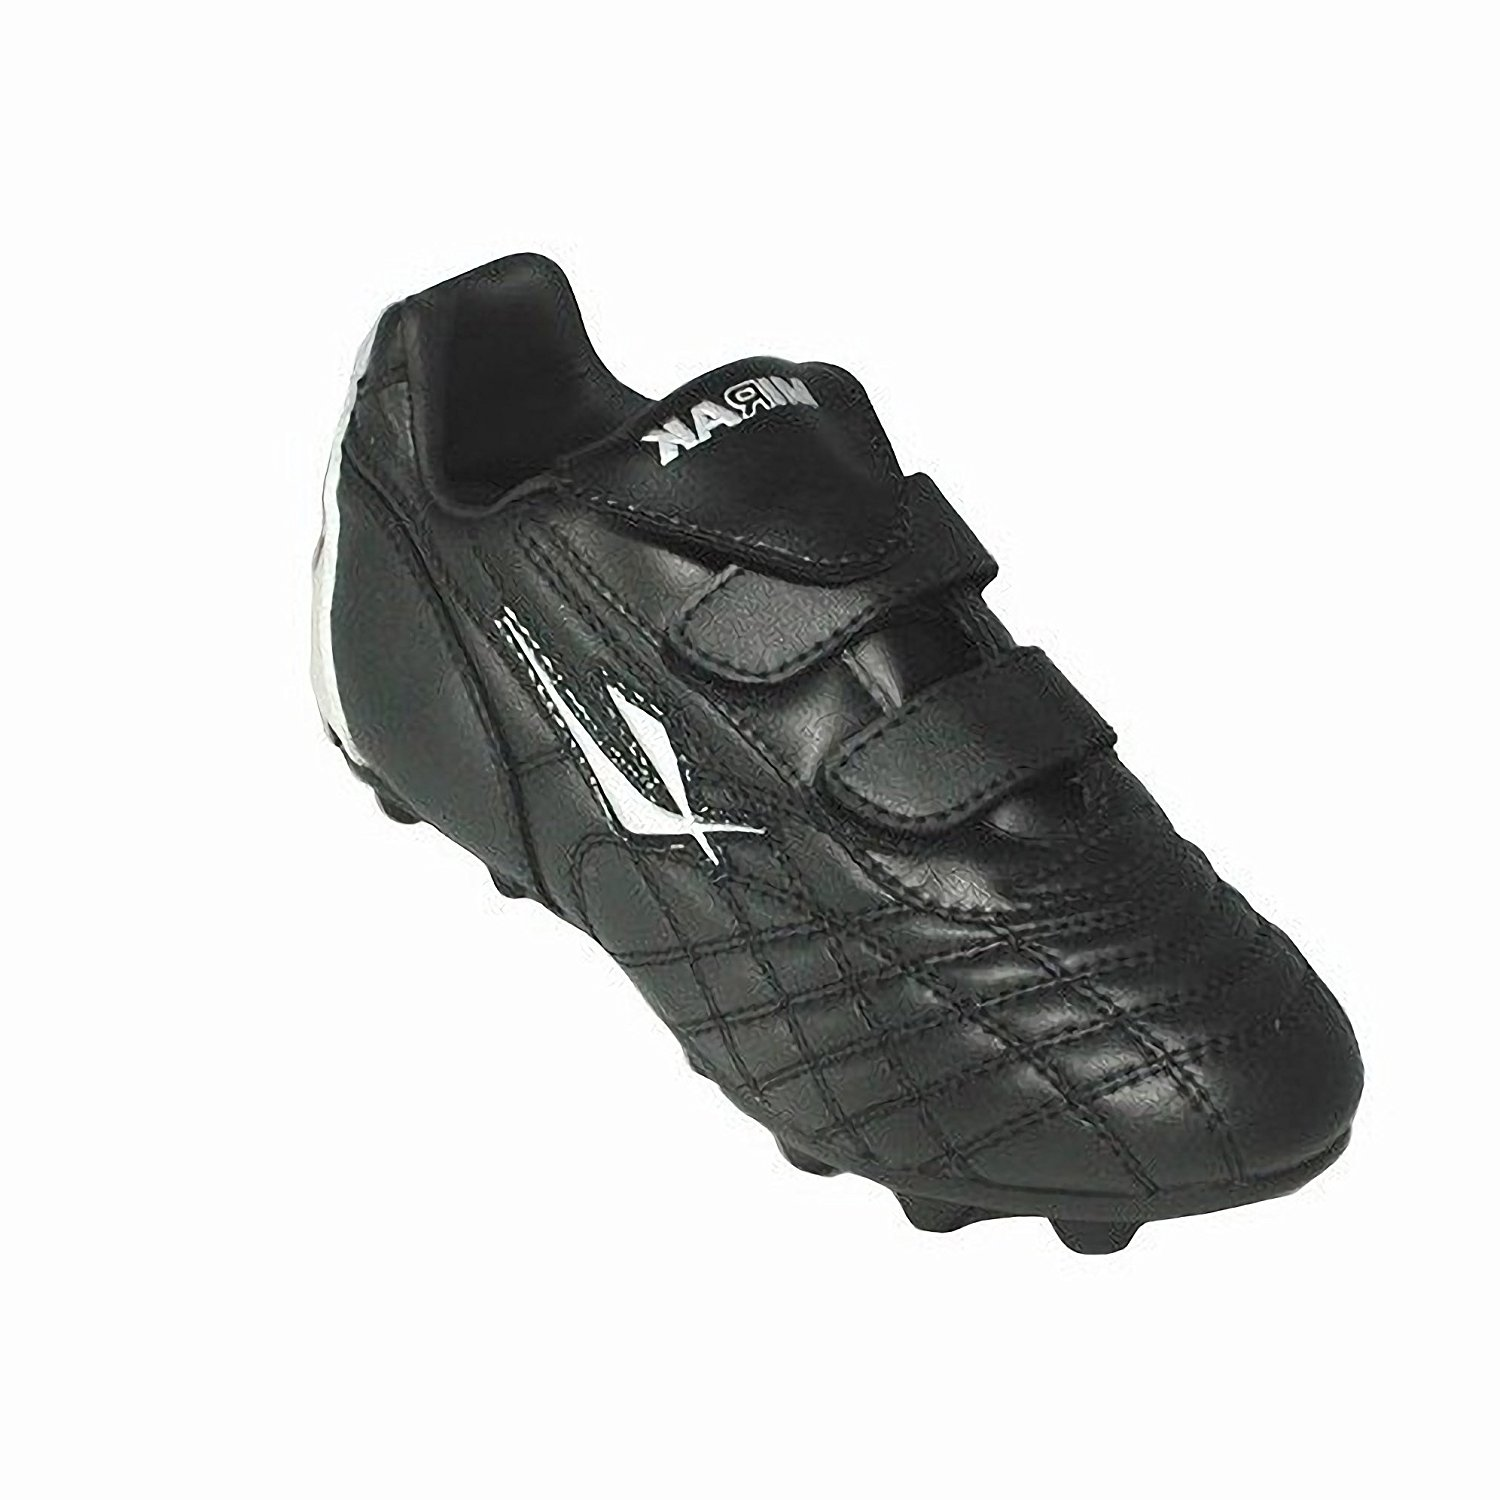 Cheap Childrens Adidas Football Boots, find Childrens Adidas ...